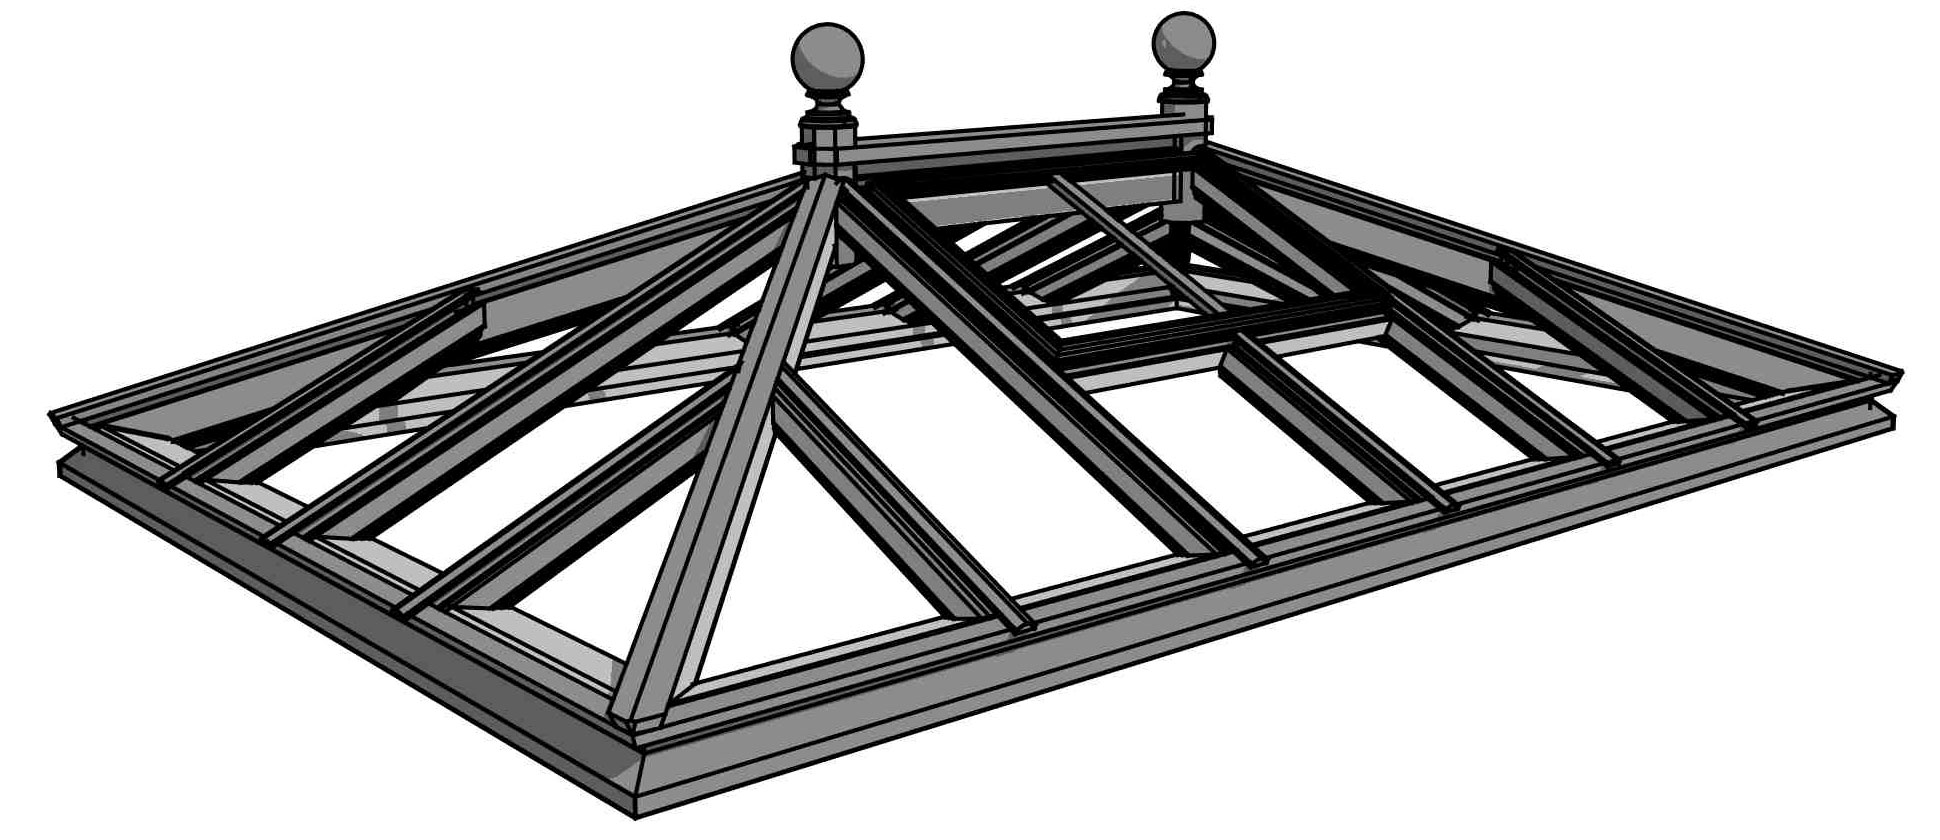 Just Roof Lanterns Classic Collection of Roof Lanterns